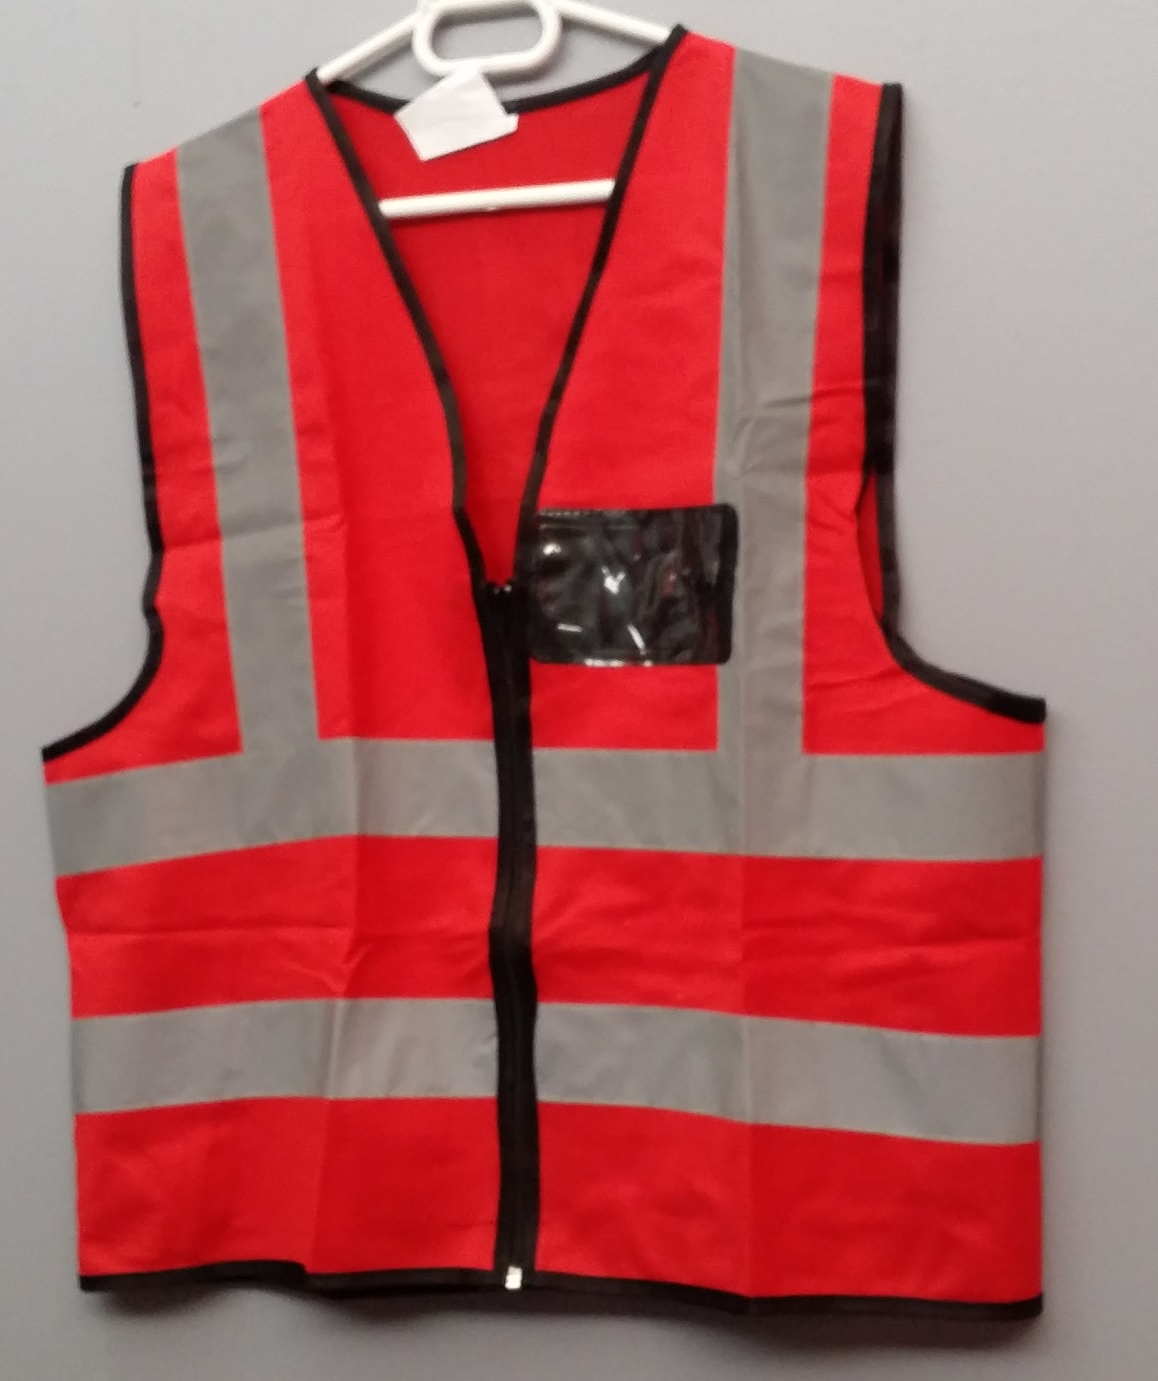 RED REFLECTIVE VEST - FIRE MARSHAL